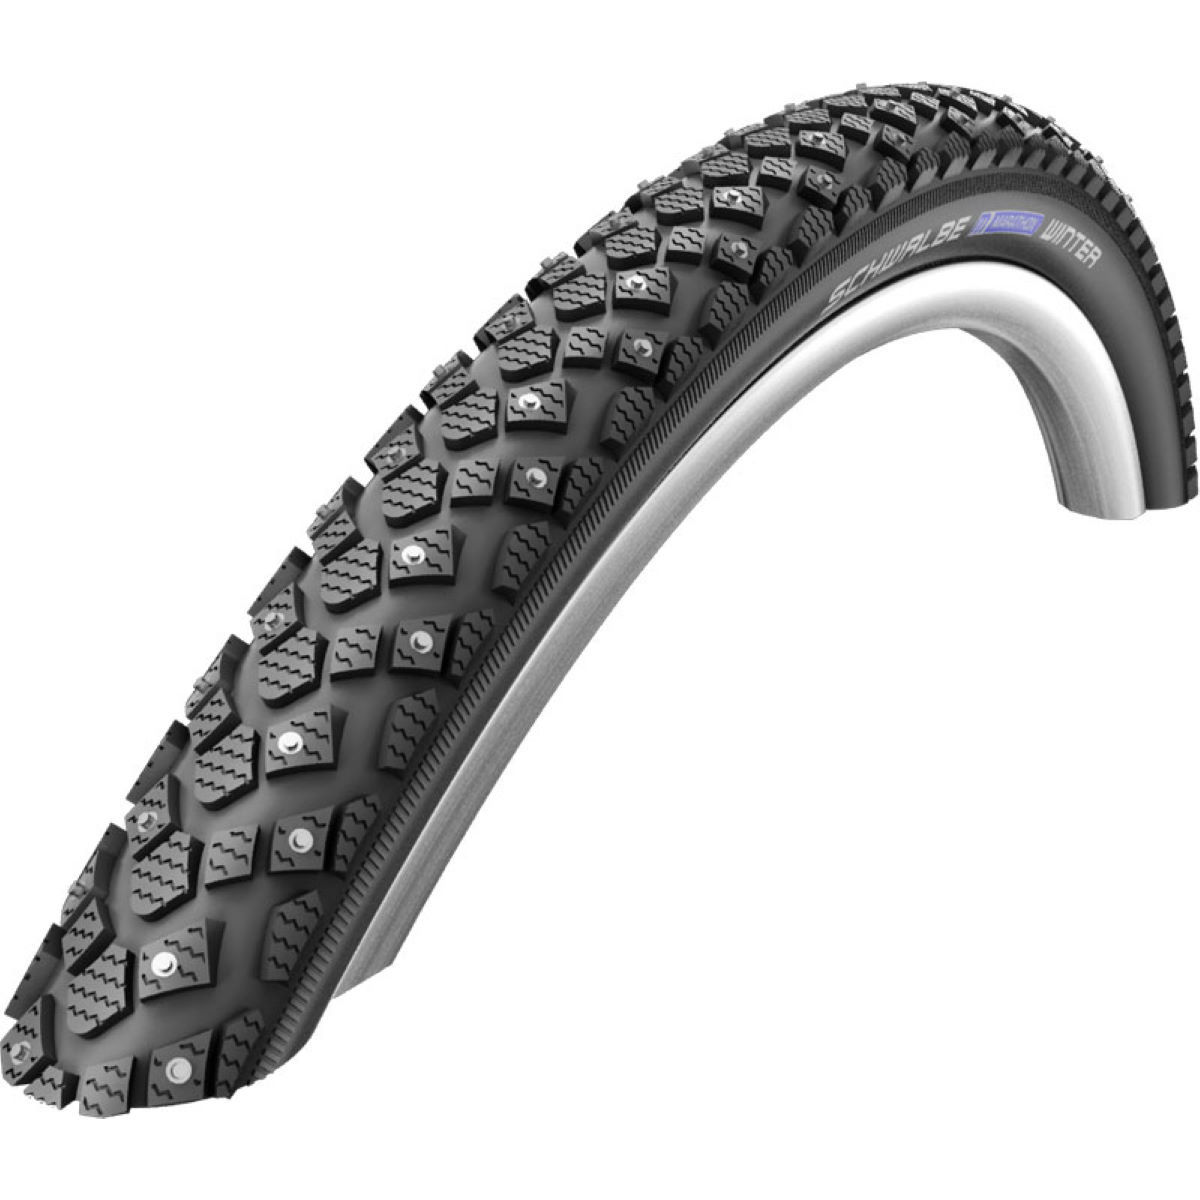 Schwalbe Marathon Winter Performance Rigid Road Tyre   City Tyres